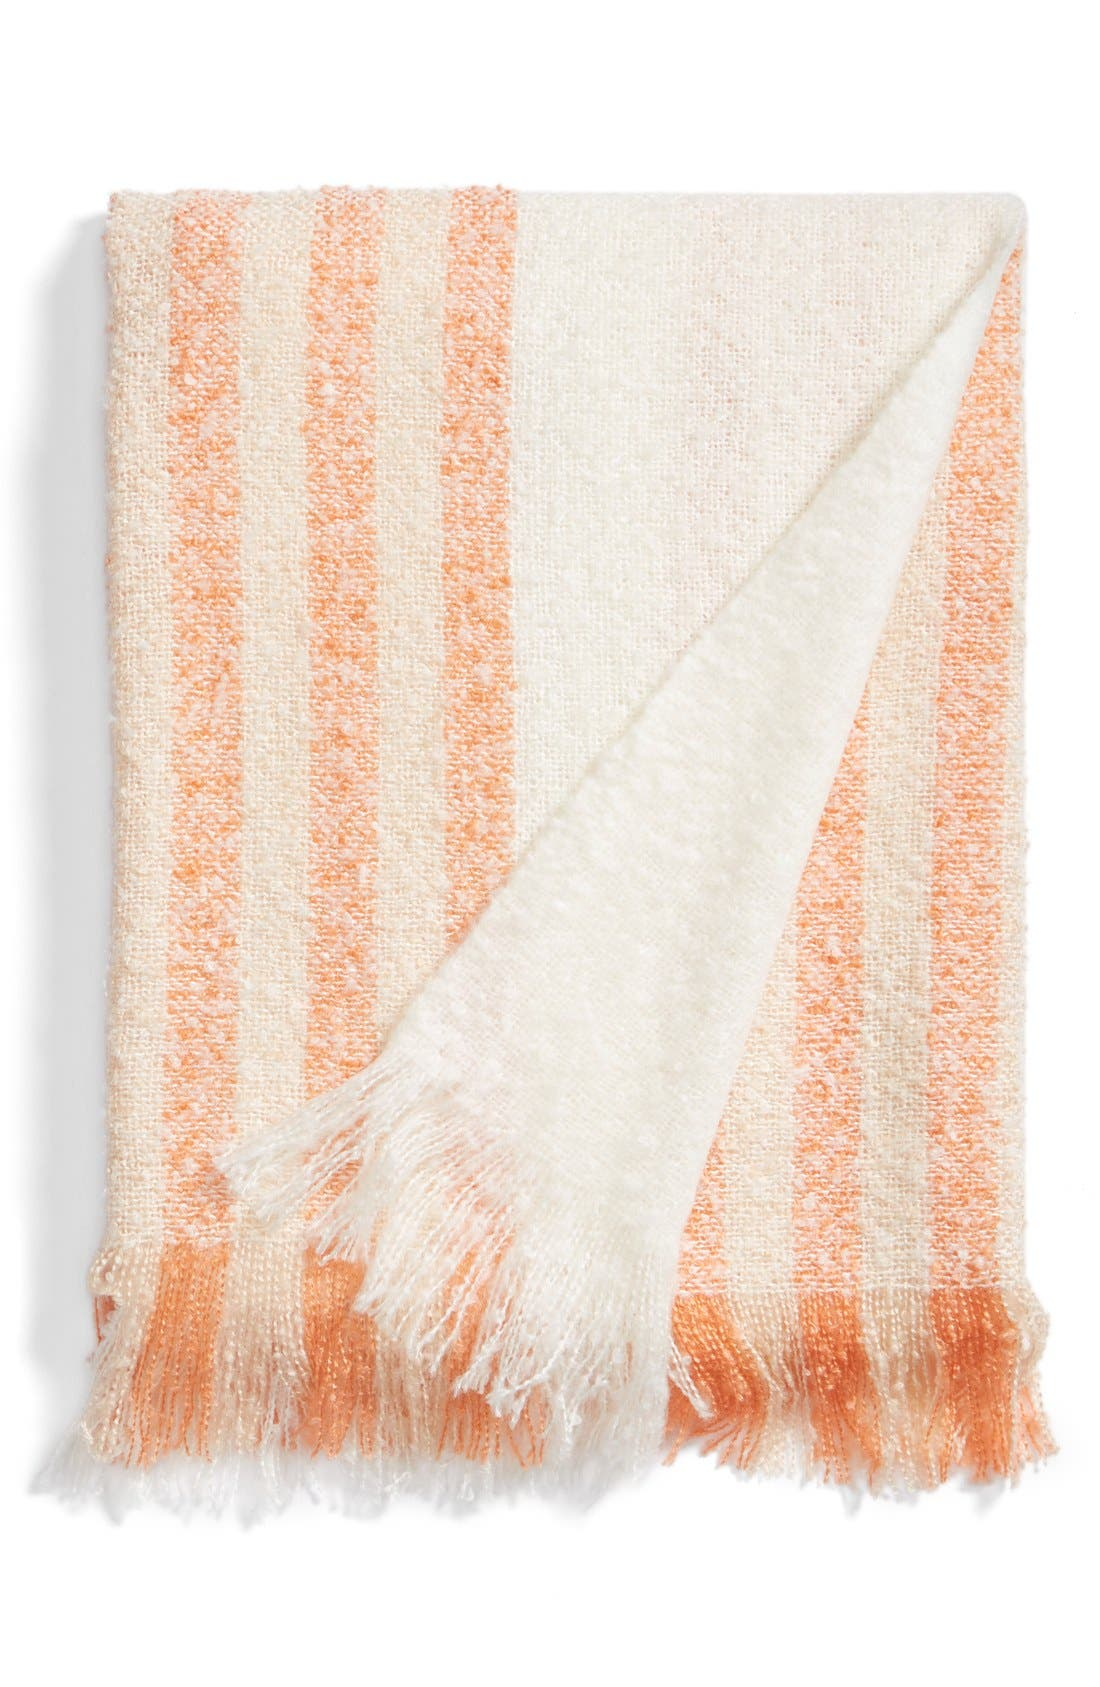 Alternate Image 1 Selected - Nordstrom at Home Stripe Knit Throw